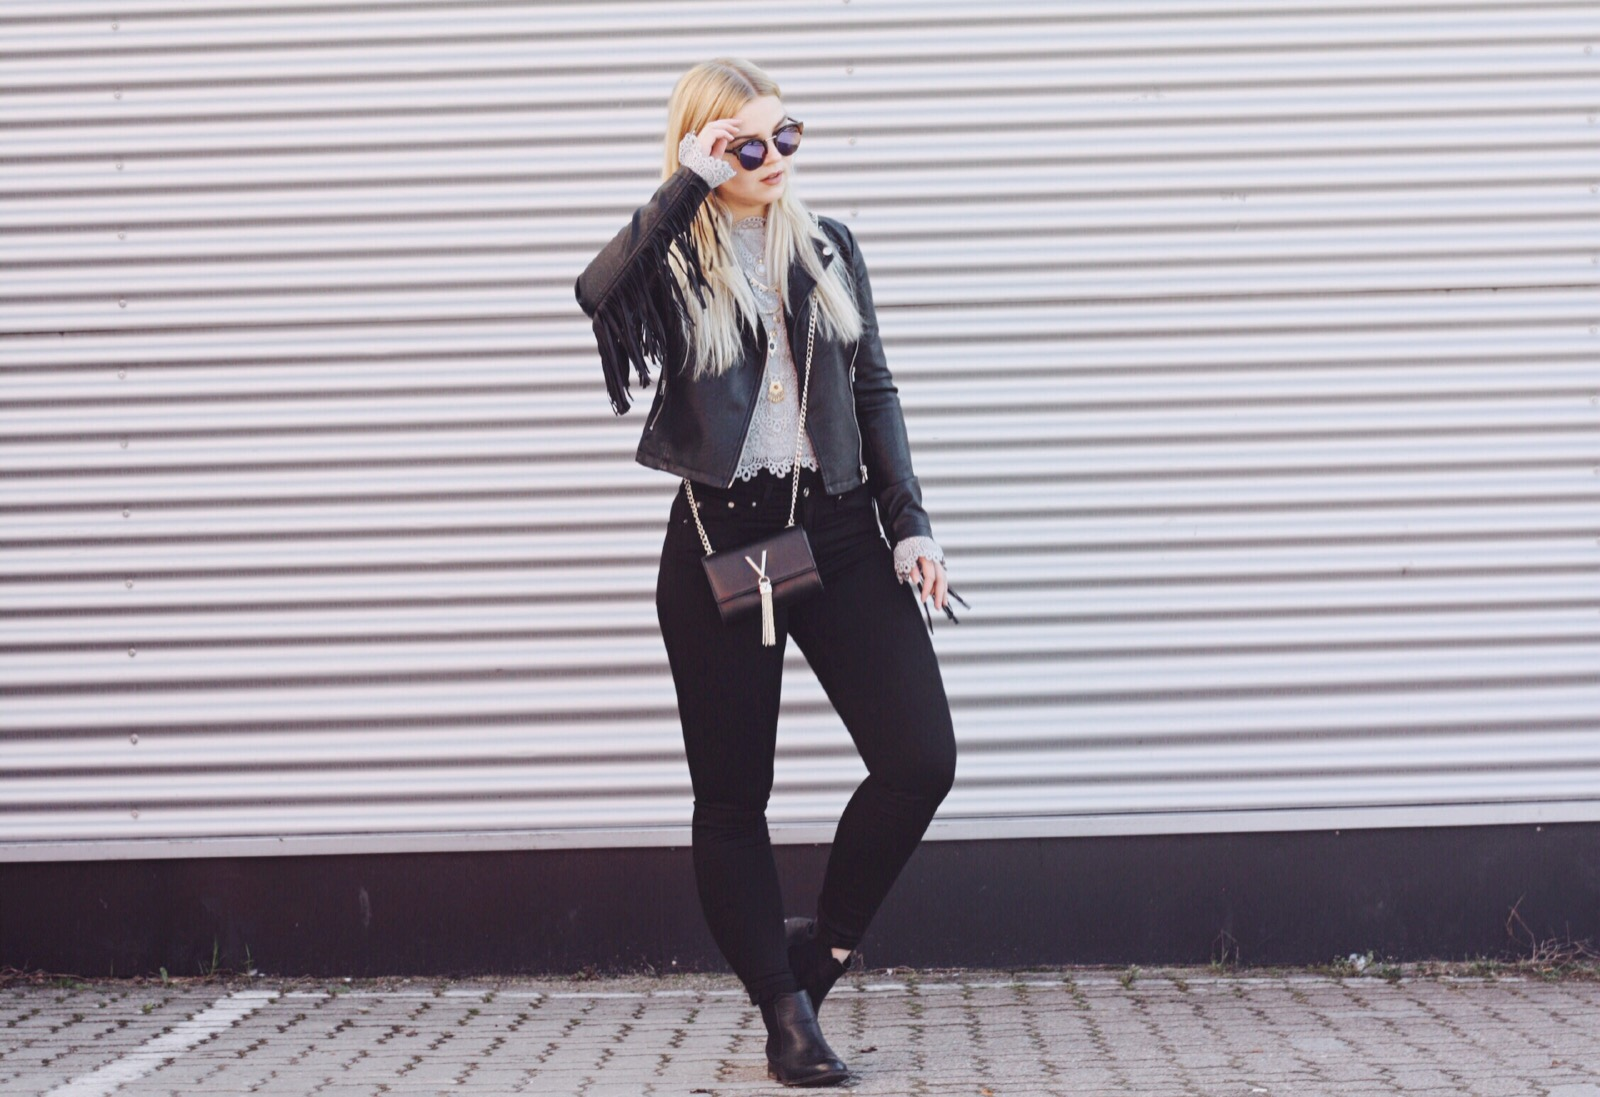 style_personalstyle_modeblog_hannover_hamburg_itsgoldie_trend